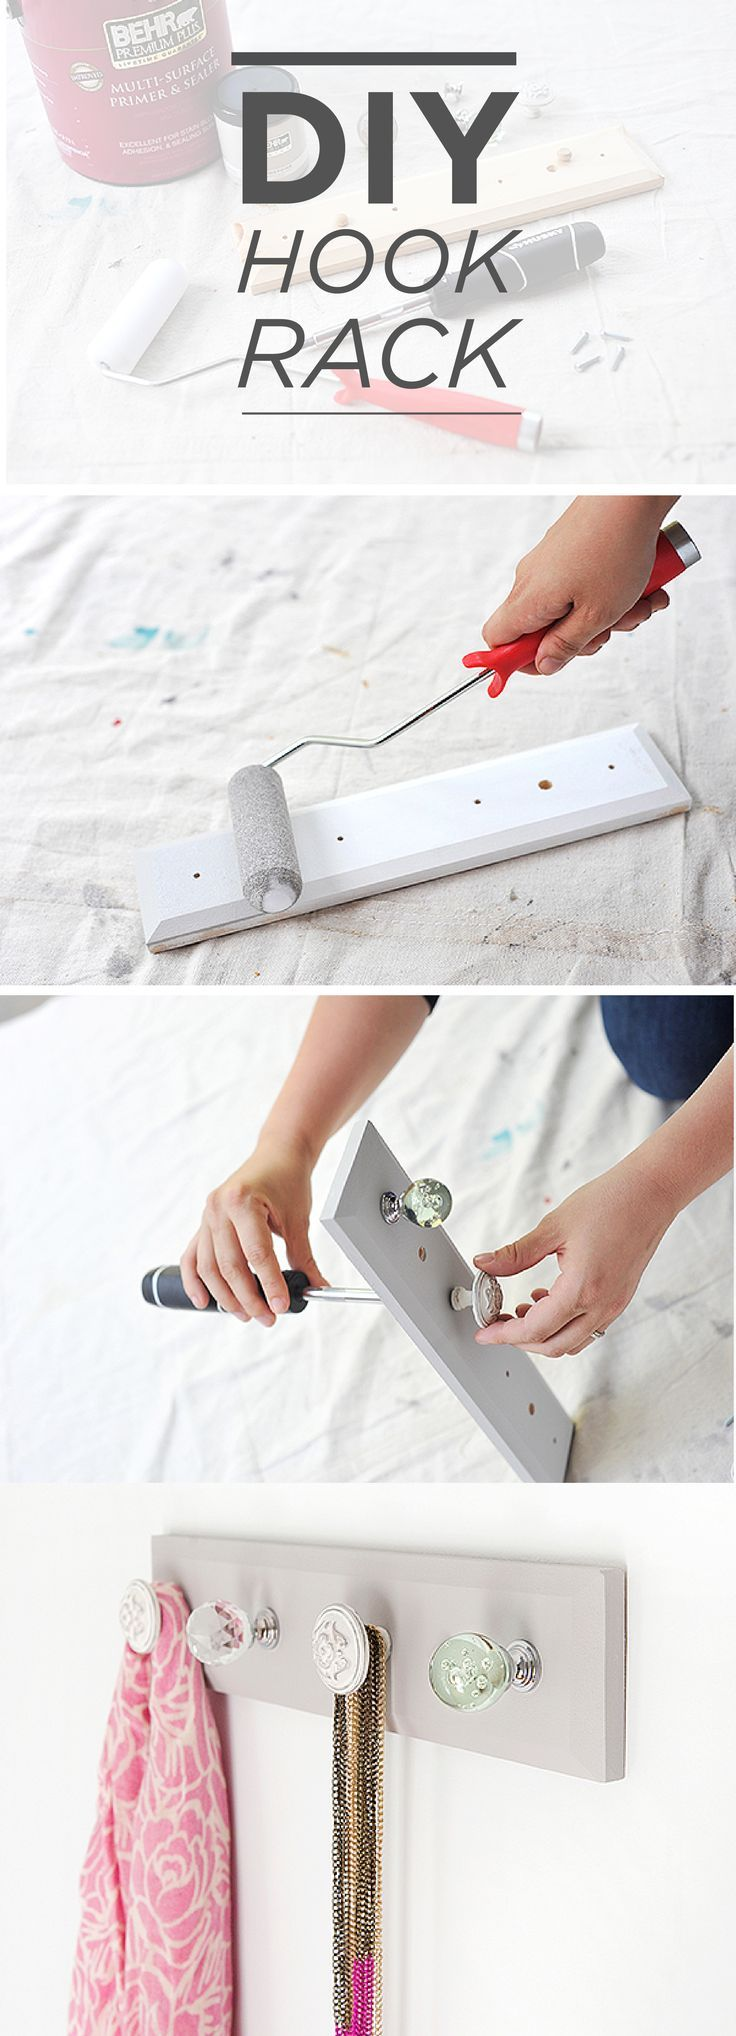 This DIY hook rack is perfect for adding to your entryway, mudroom, or even laundry room! Not only does it help keep everything organized, but when finished with BEHR paint in Serene Journey, it's stylish too. http://blog.homedepot.com/diy-hook-rack-using-cabinet-knobs/